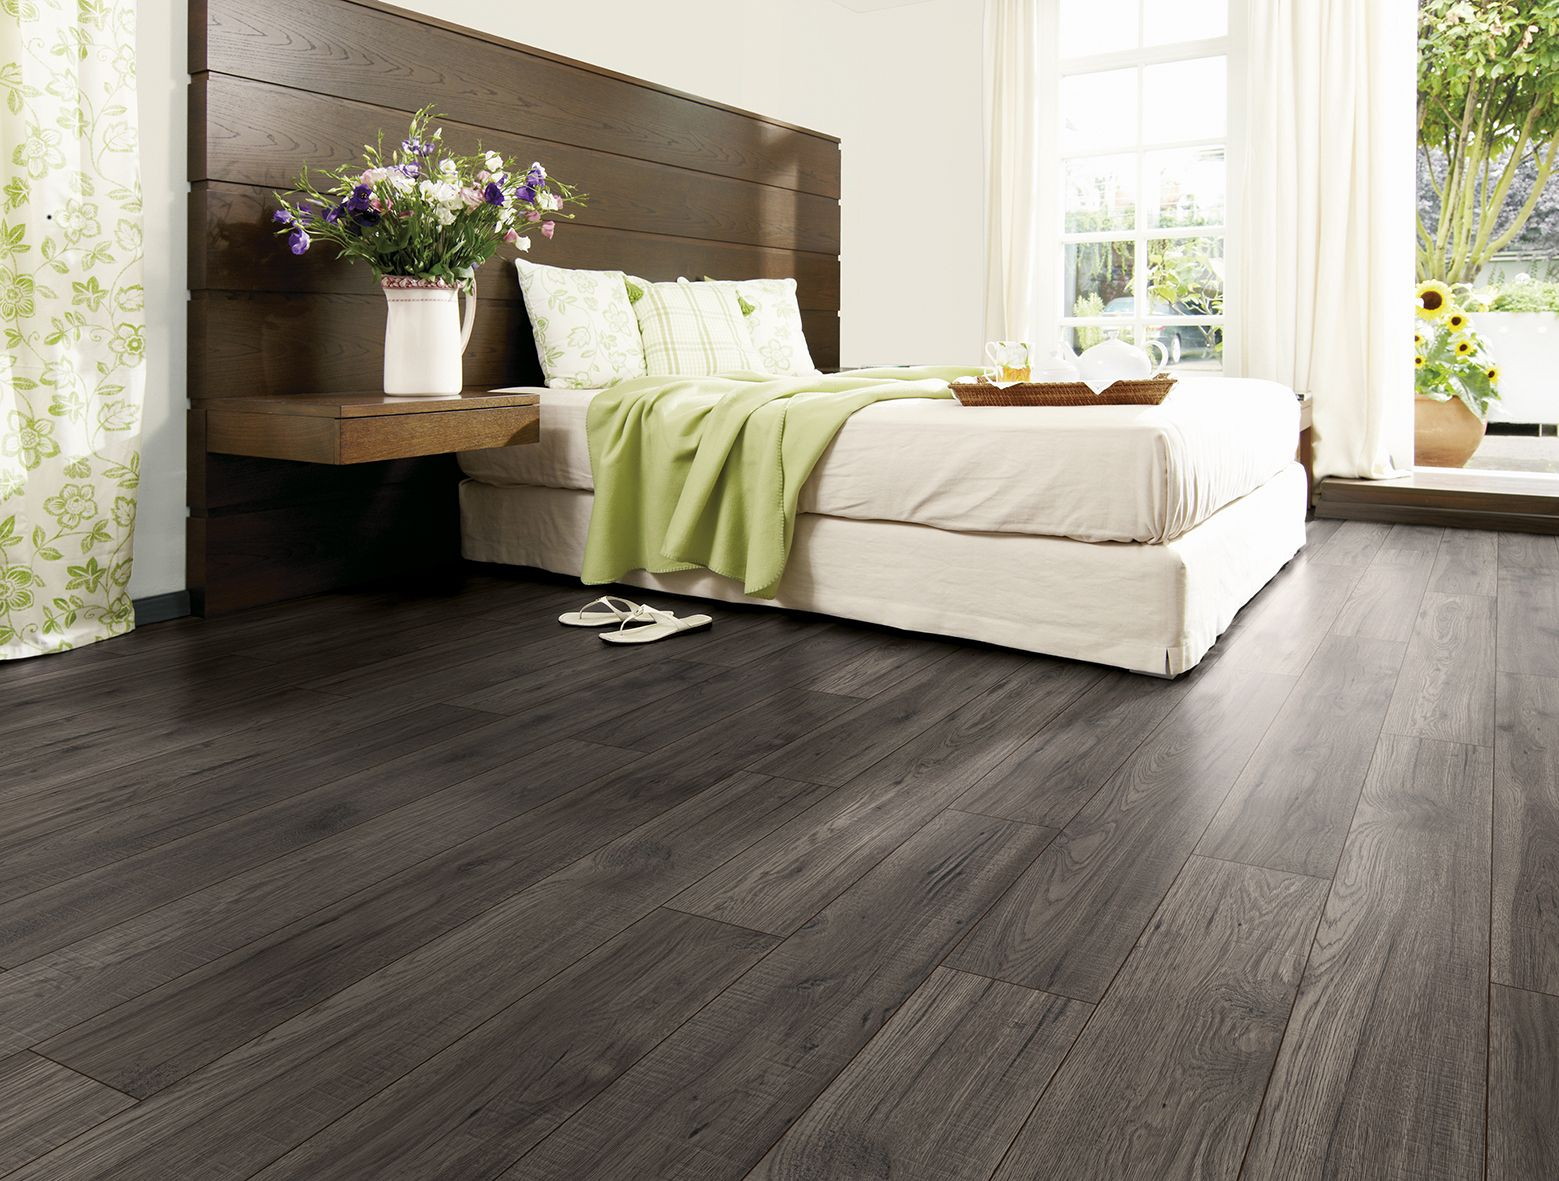 The look and feel of timber flooring but with more durability